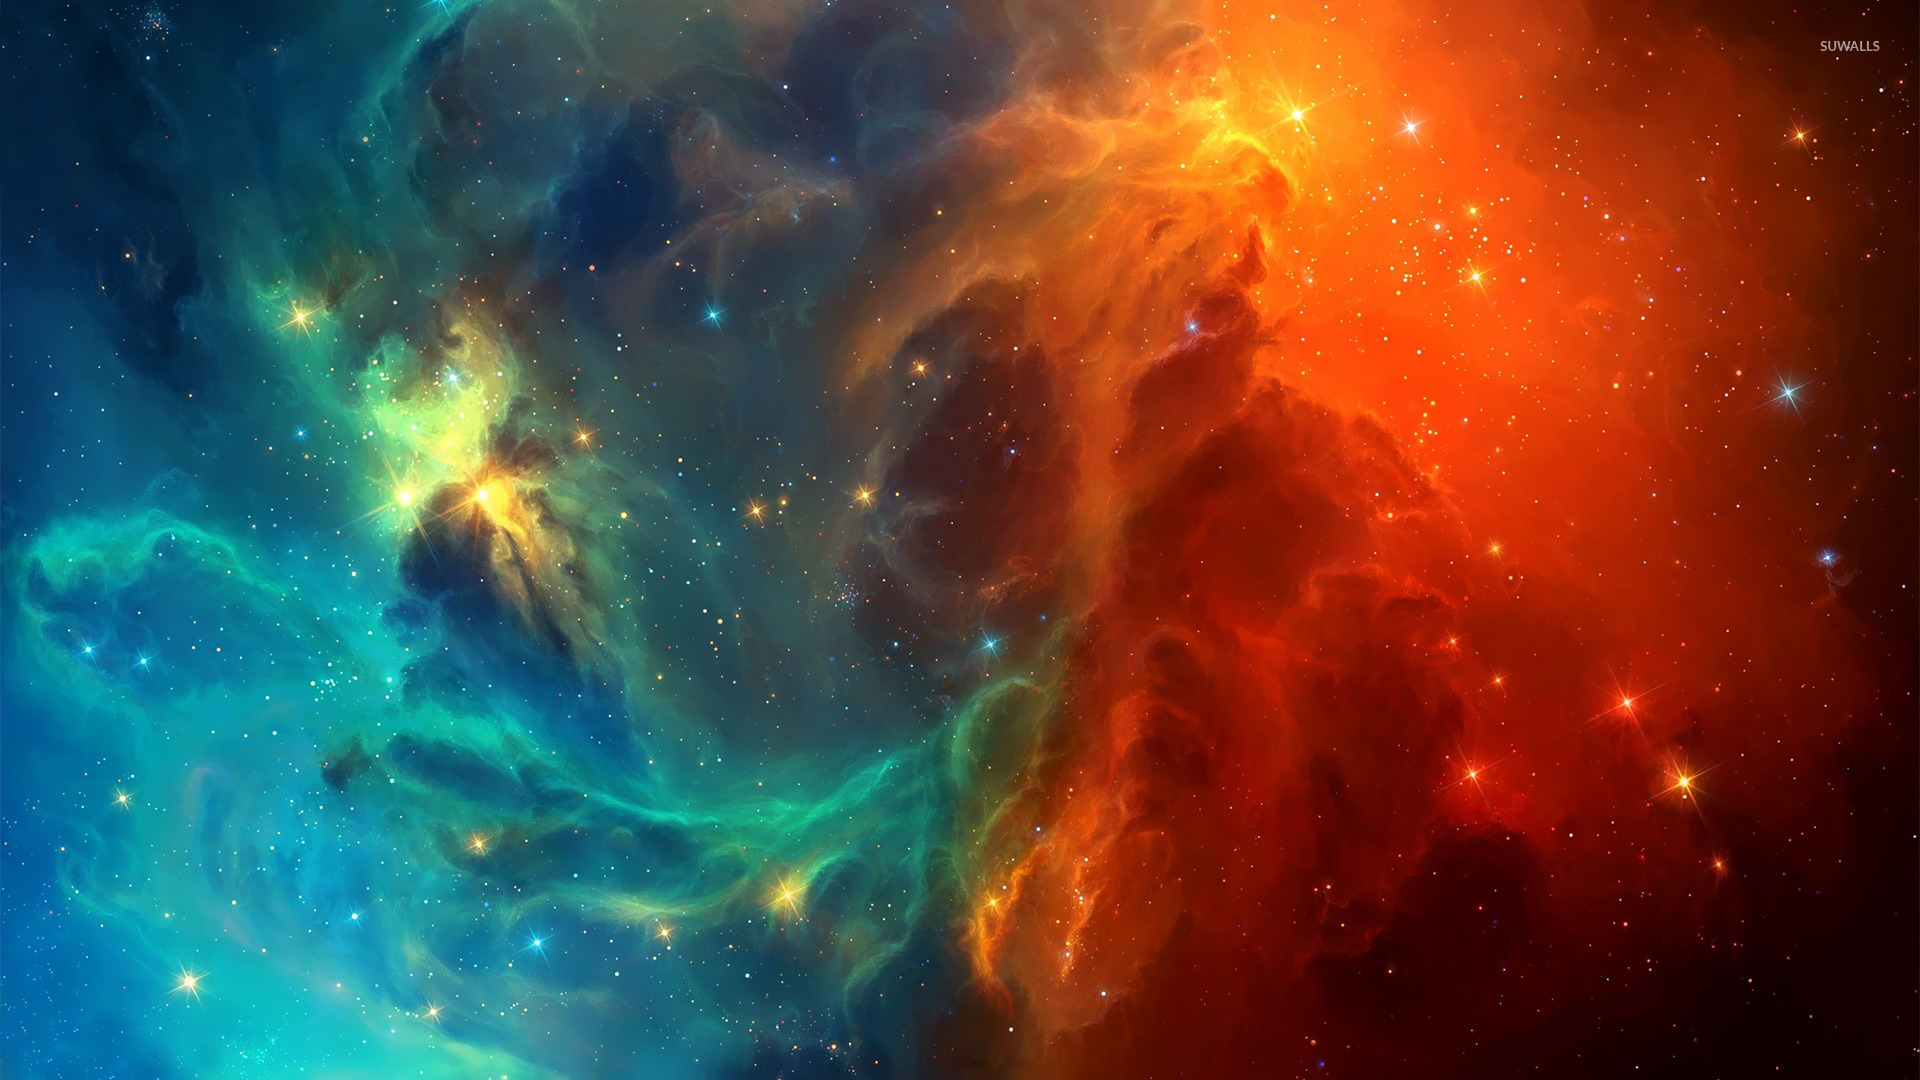 Colorful nebula [2] wallpaper - Space wallpapers - #21981